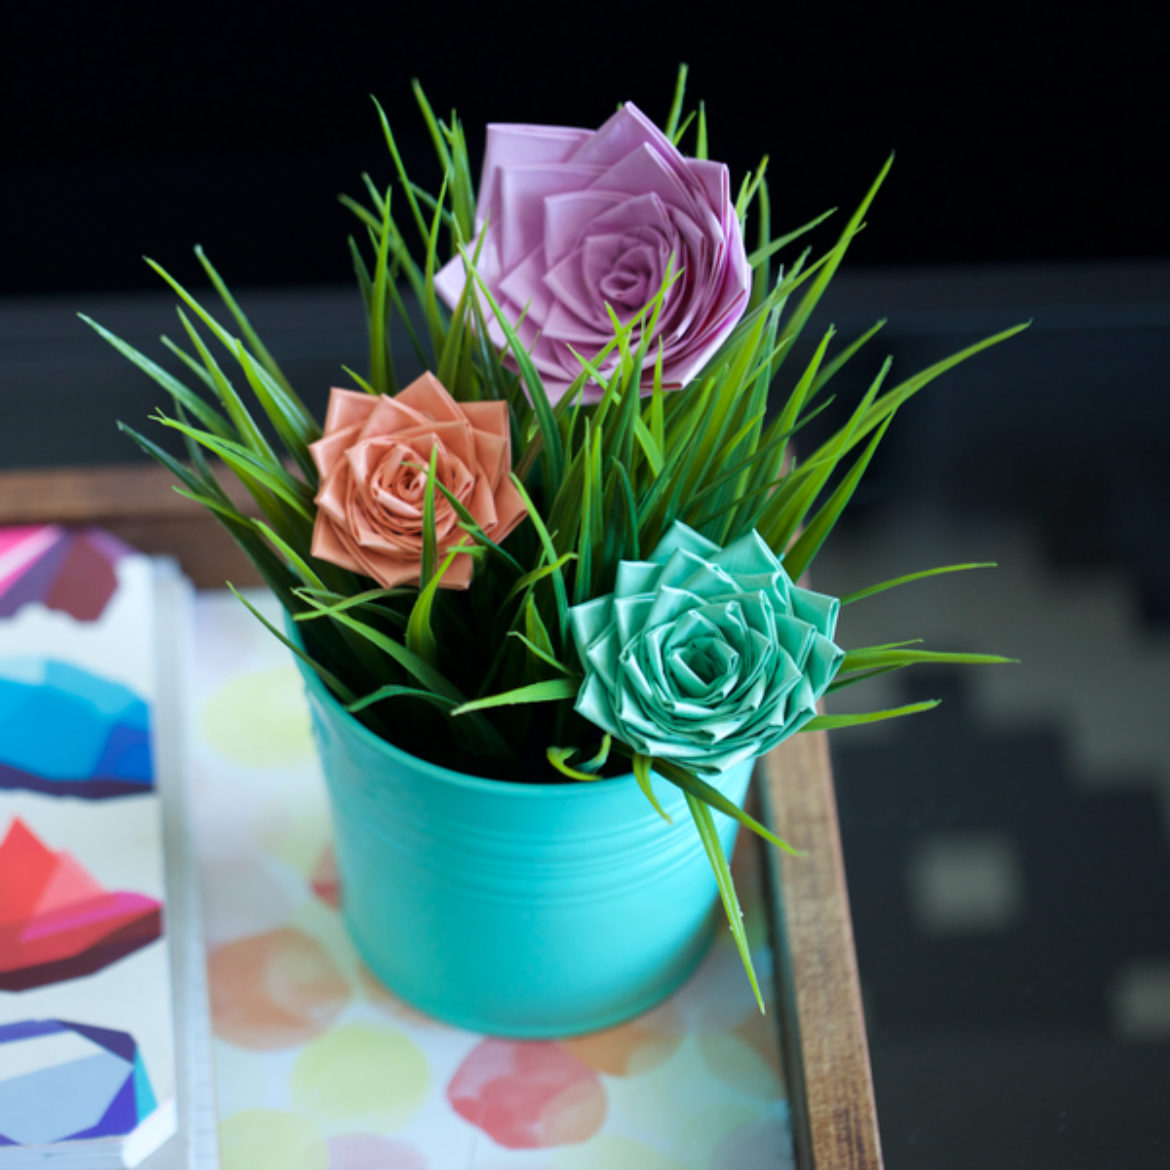 Finished Duck Tape®Roses in a planter example with grass inside